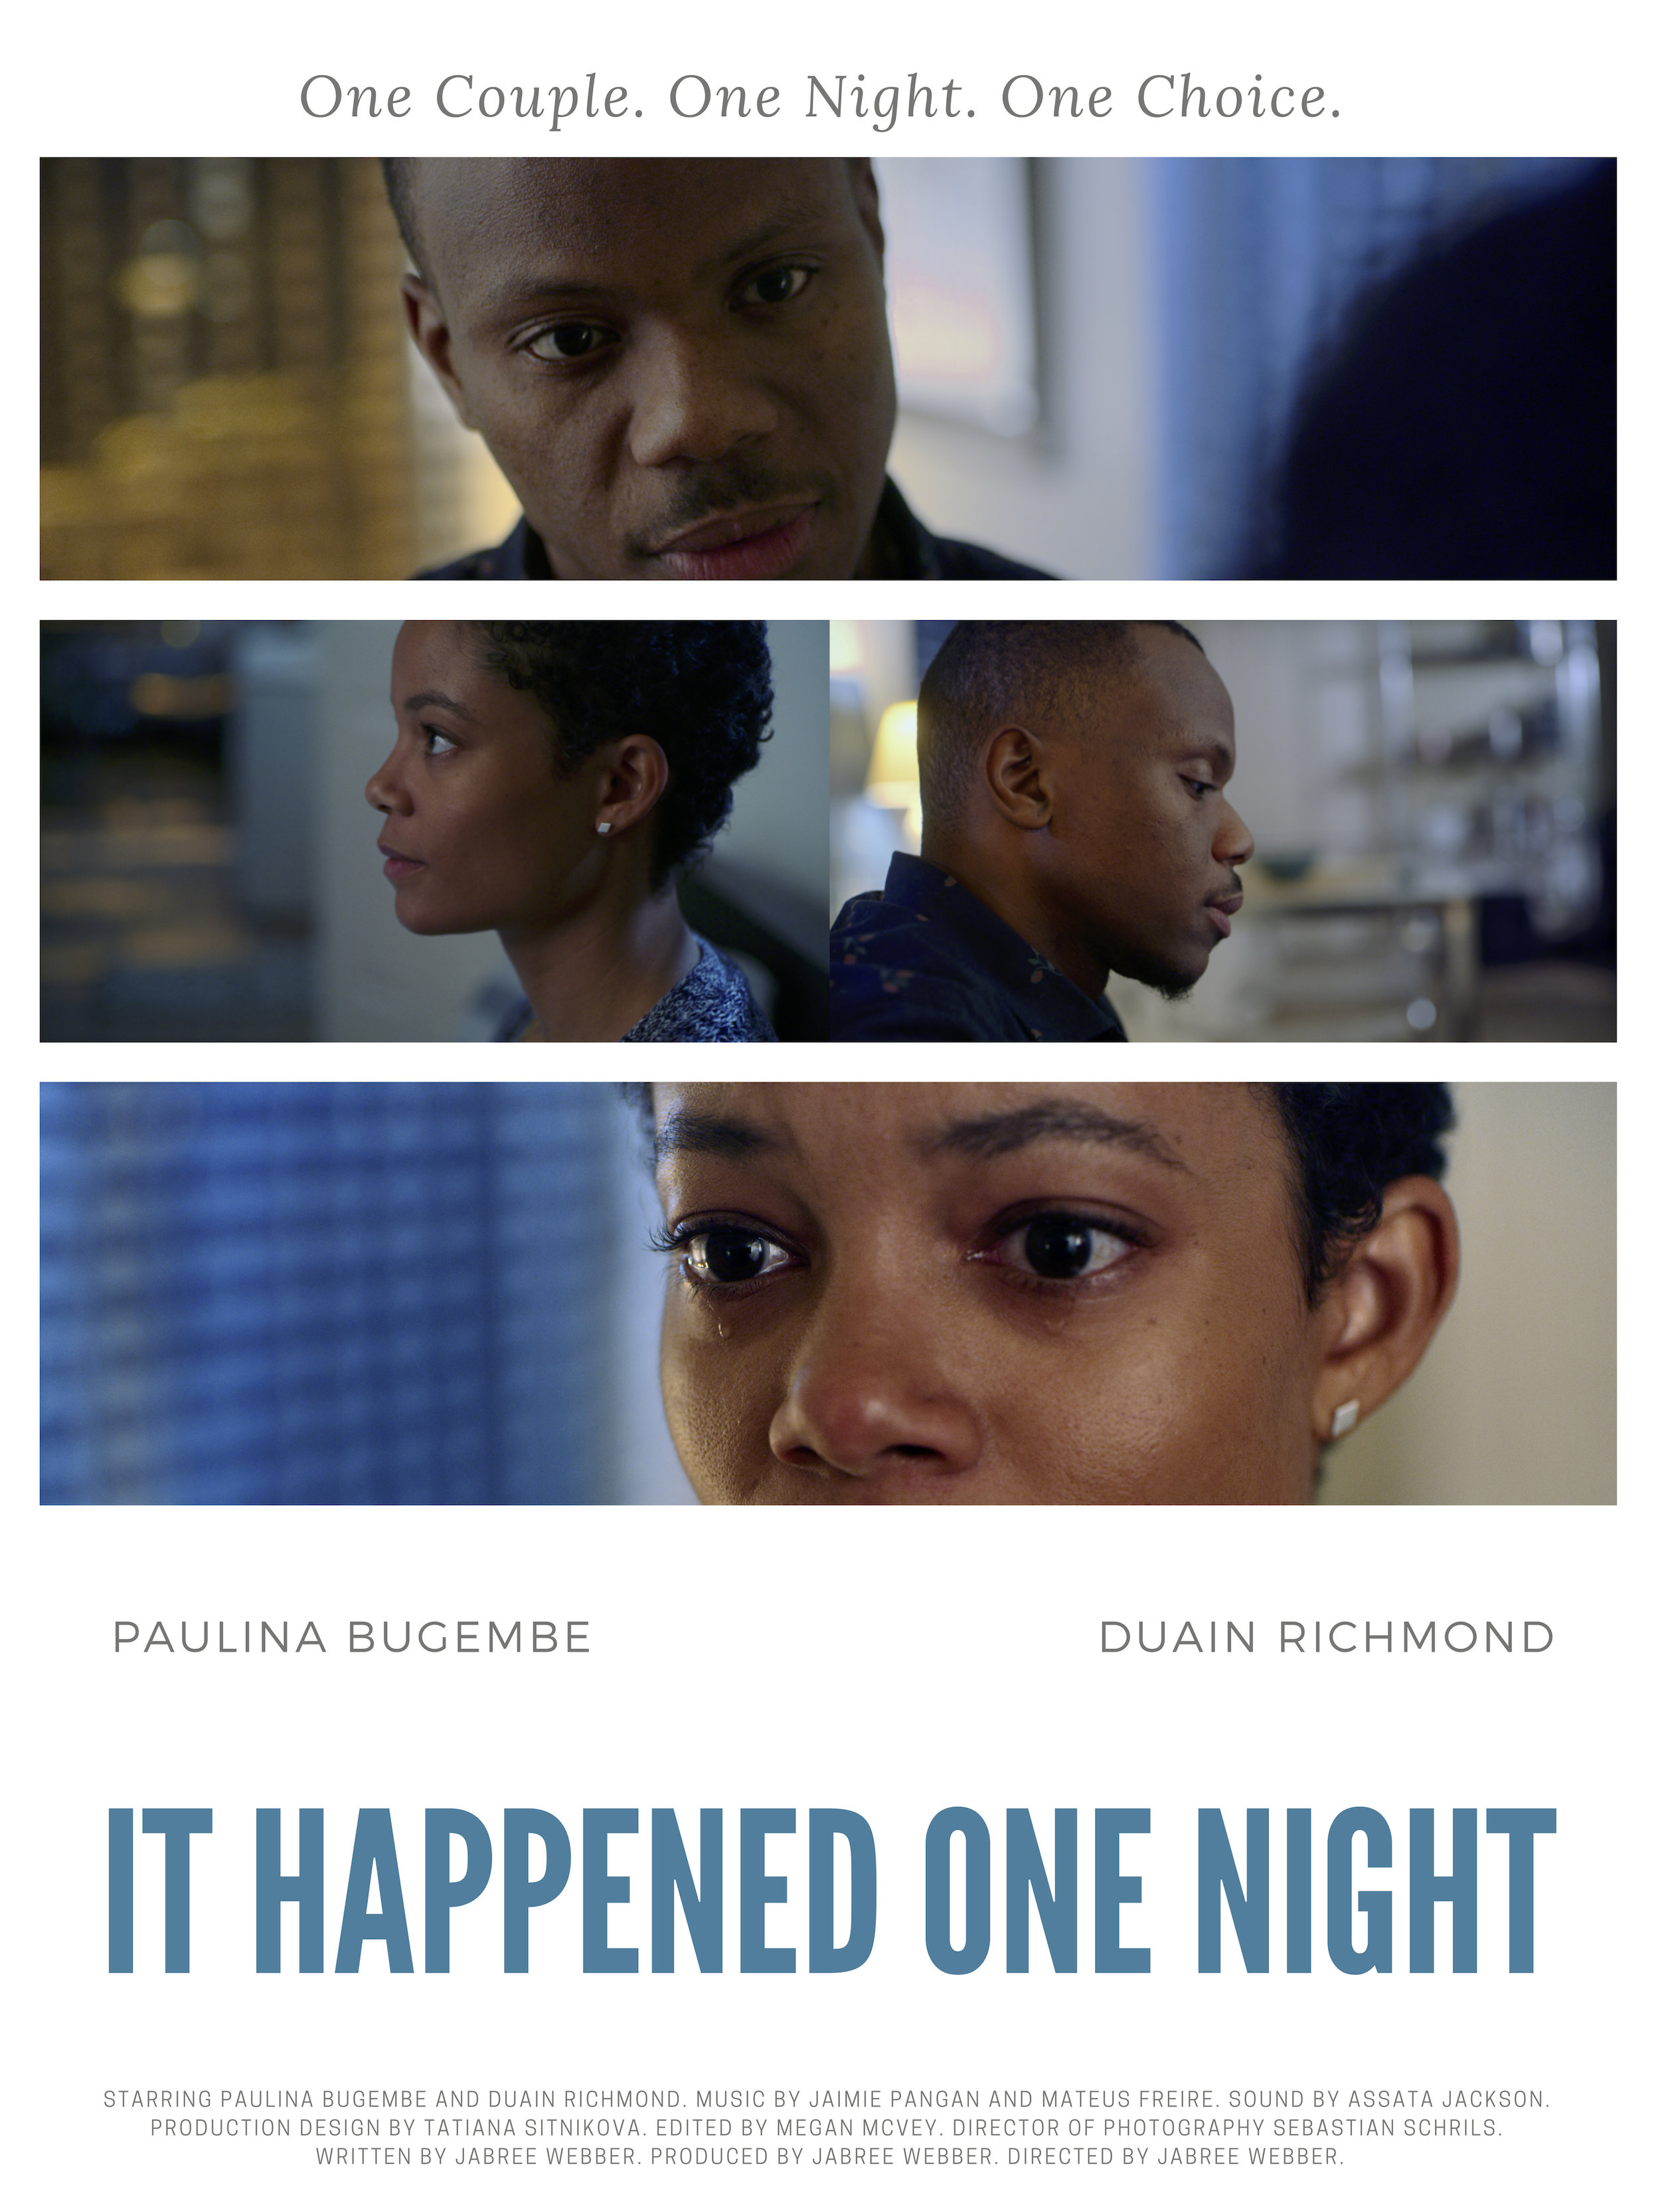 STATUS: Post-Production - Written, Directed, and Produced by Jabree Webber